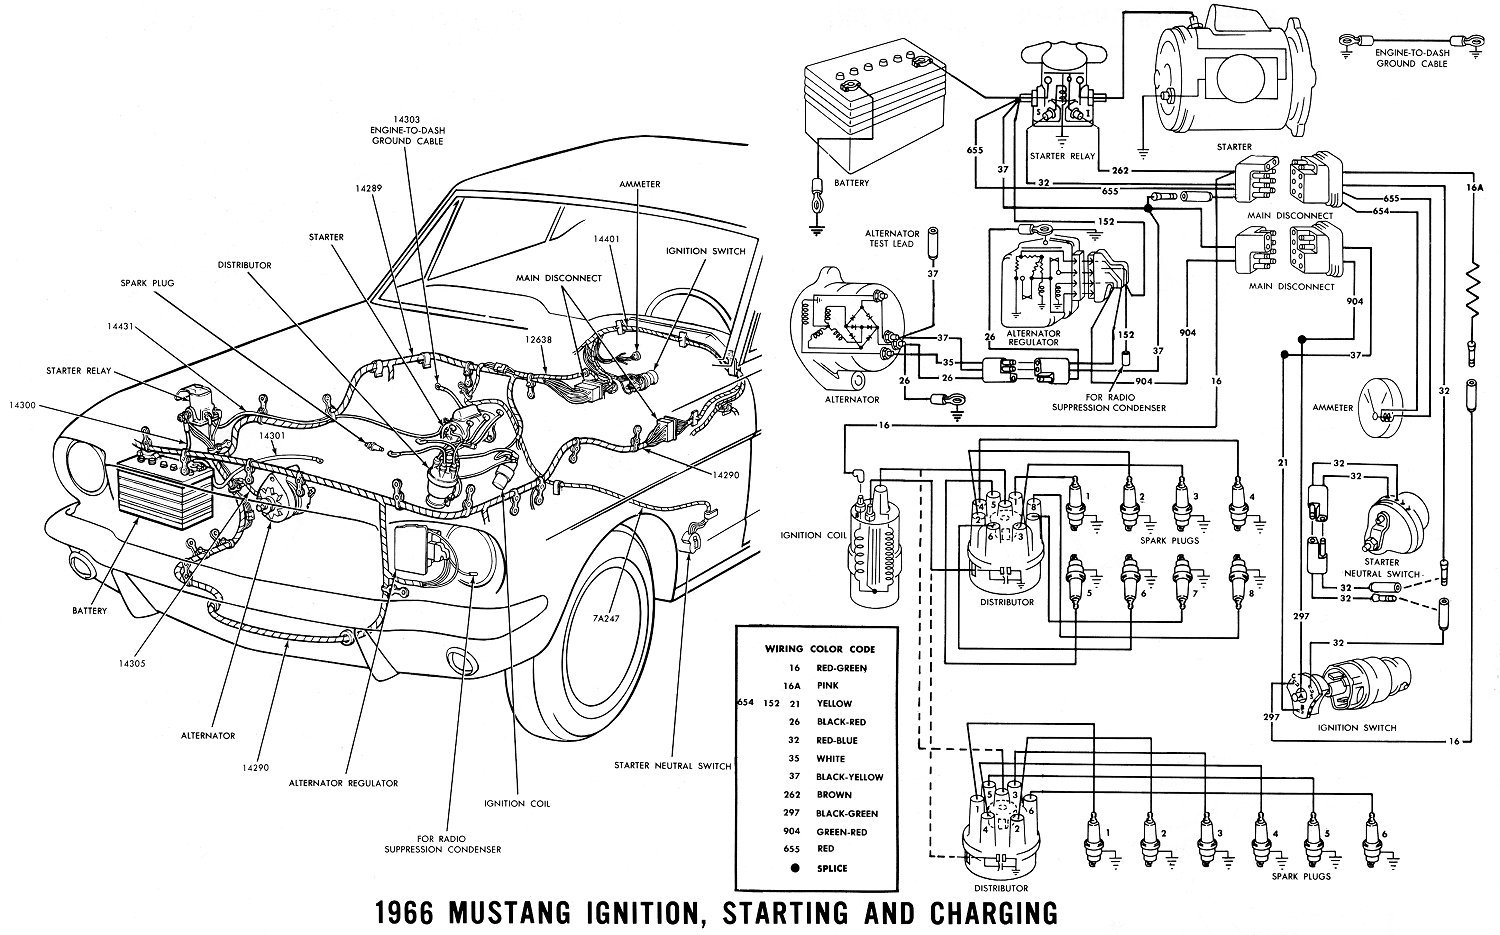 wiring diagram for 1964 ford f100 the wiring diagram 1965 ford ignition system wiring diagram 1965 car wiring diagram